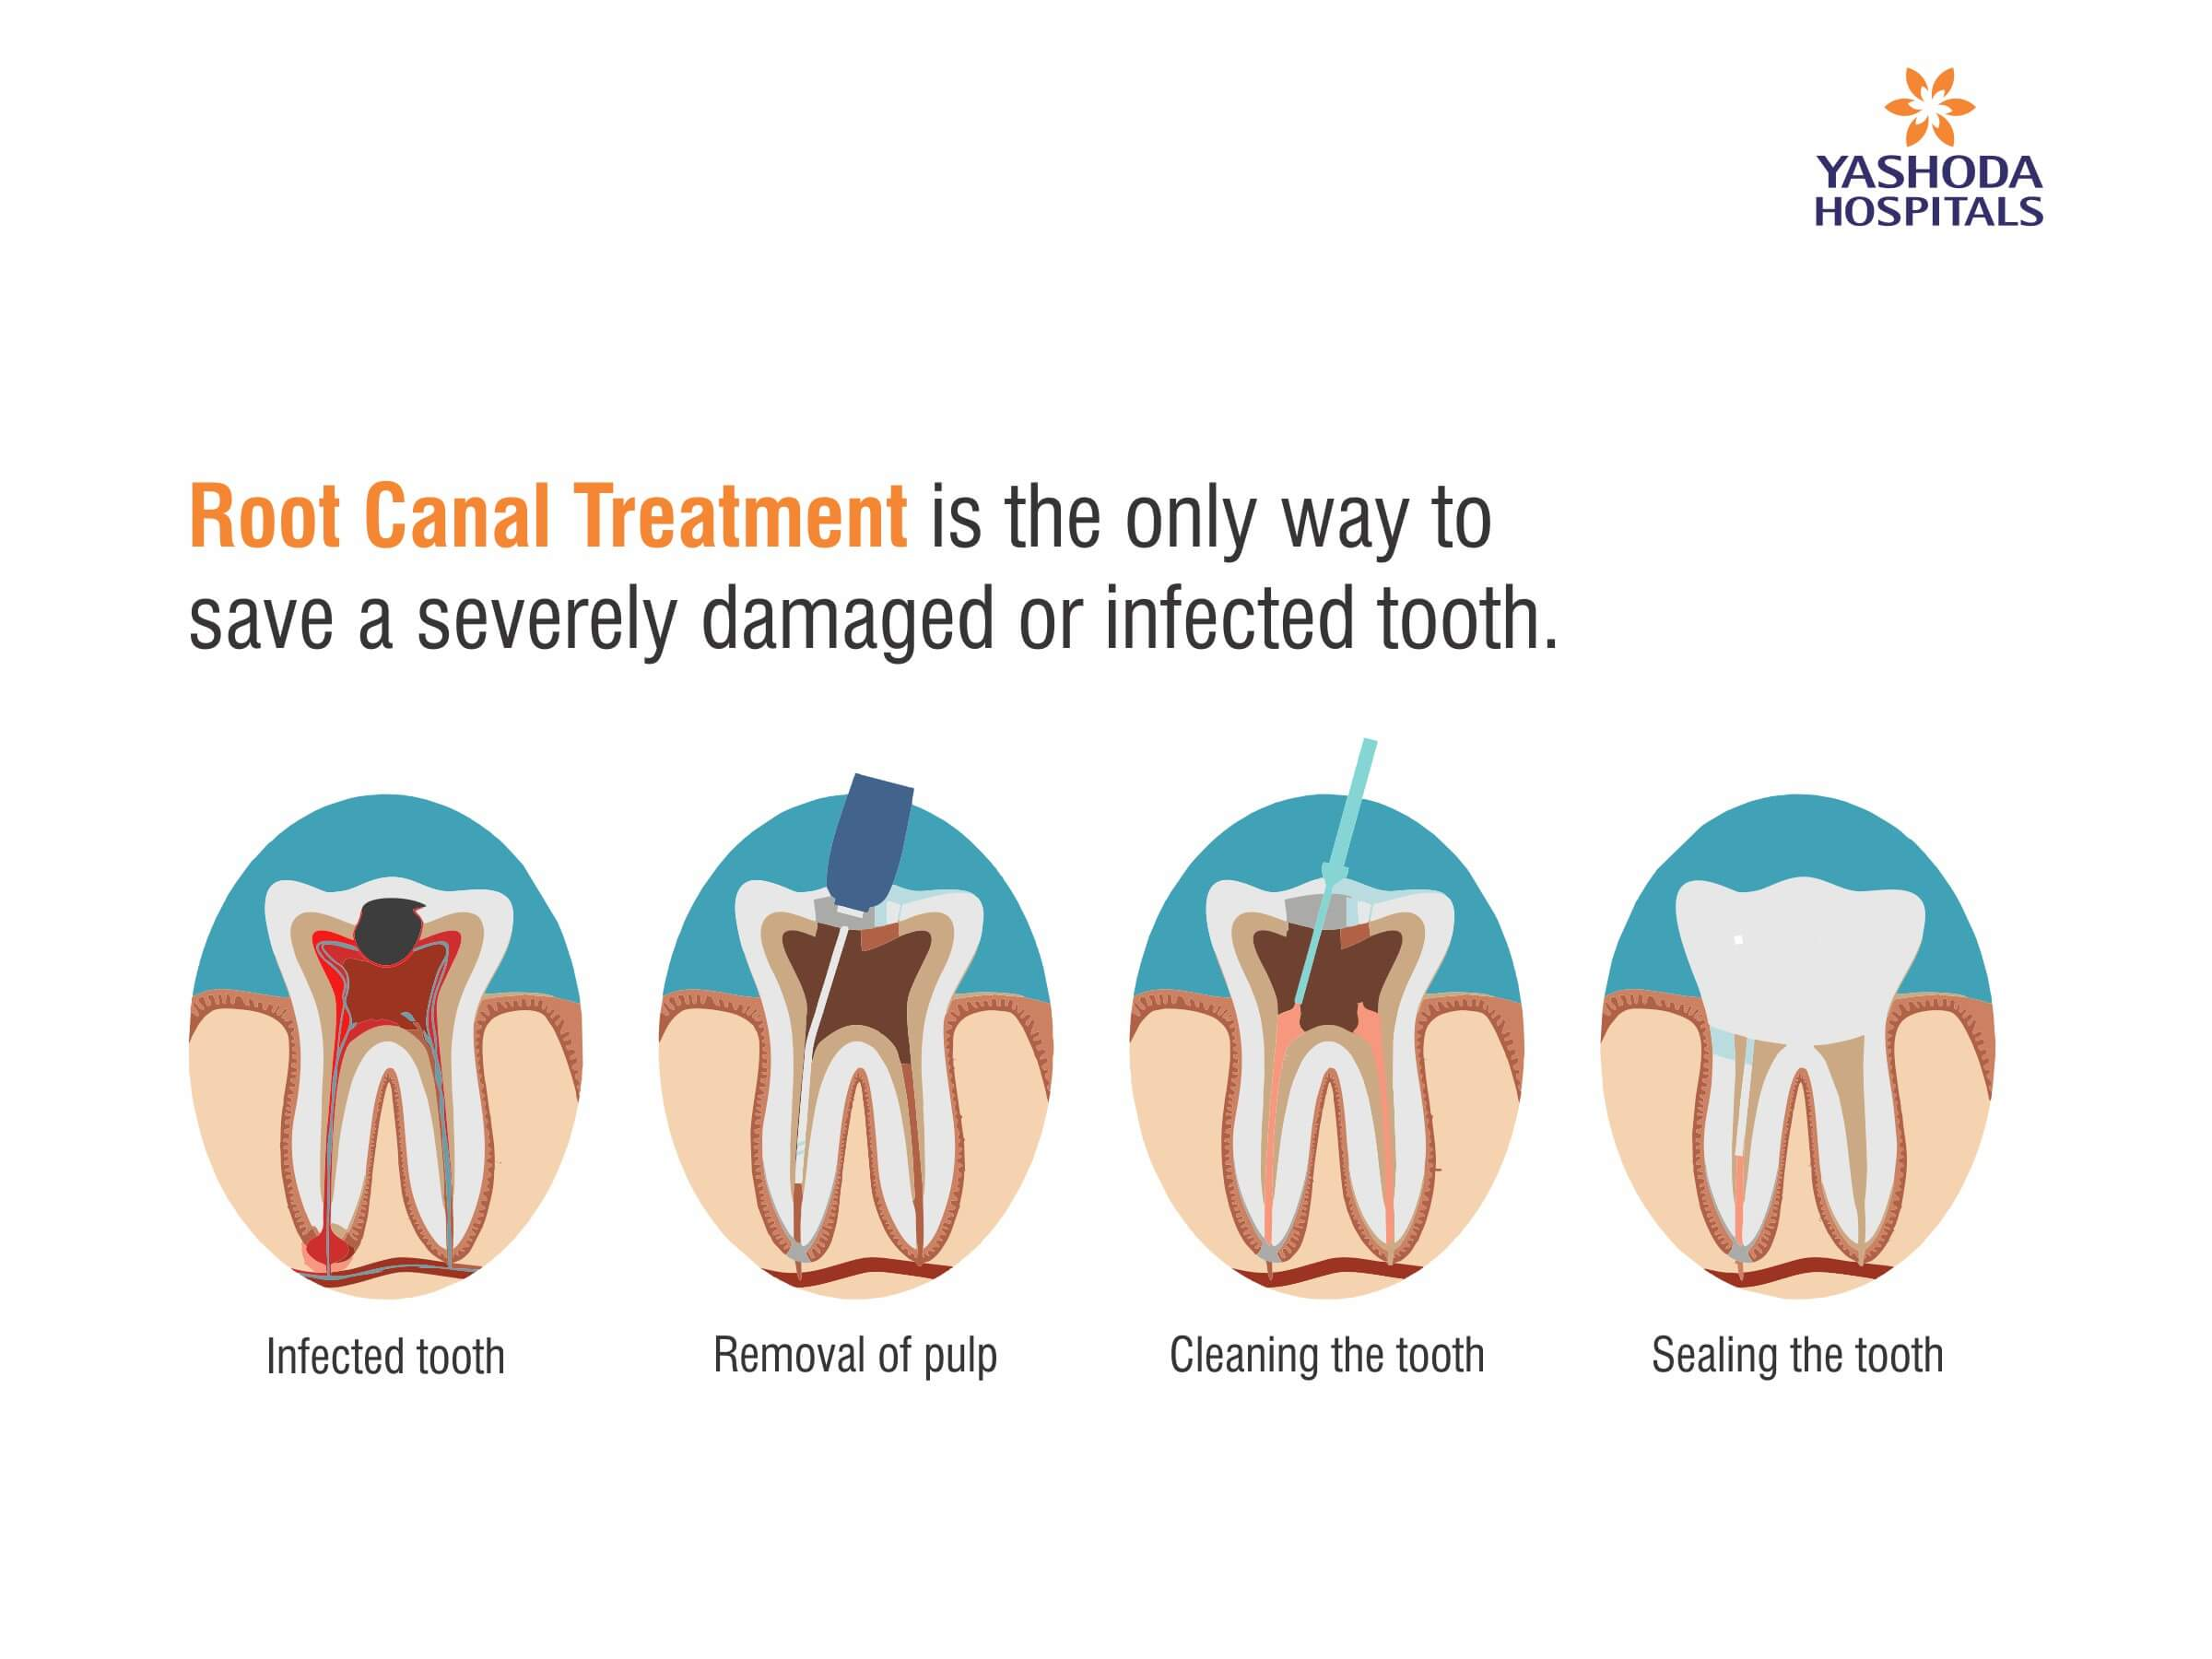 Root Canal is used to treat infection